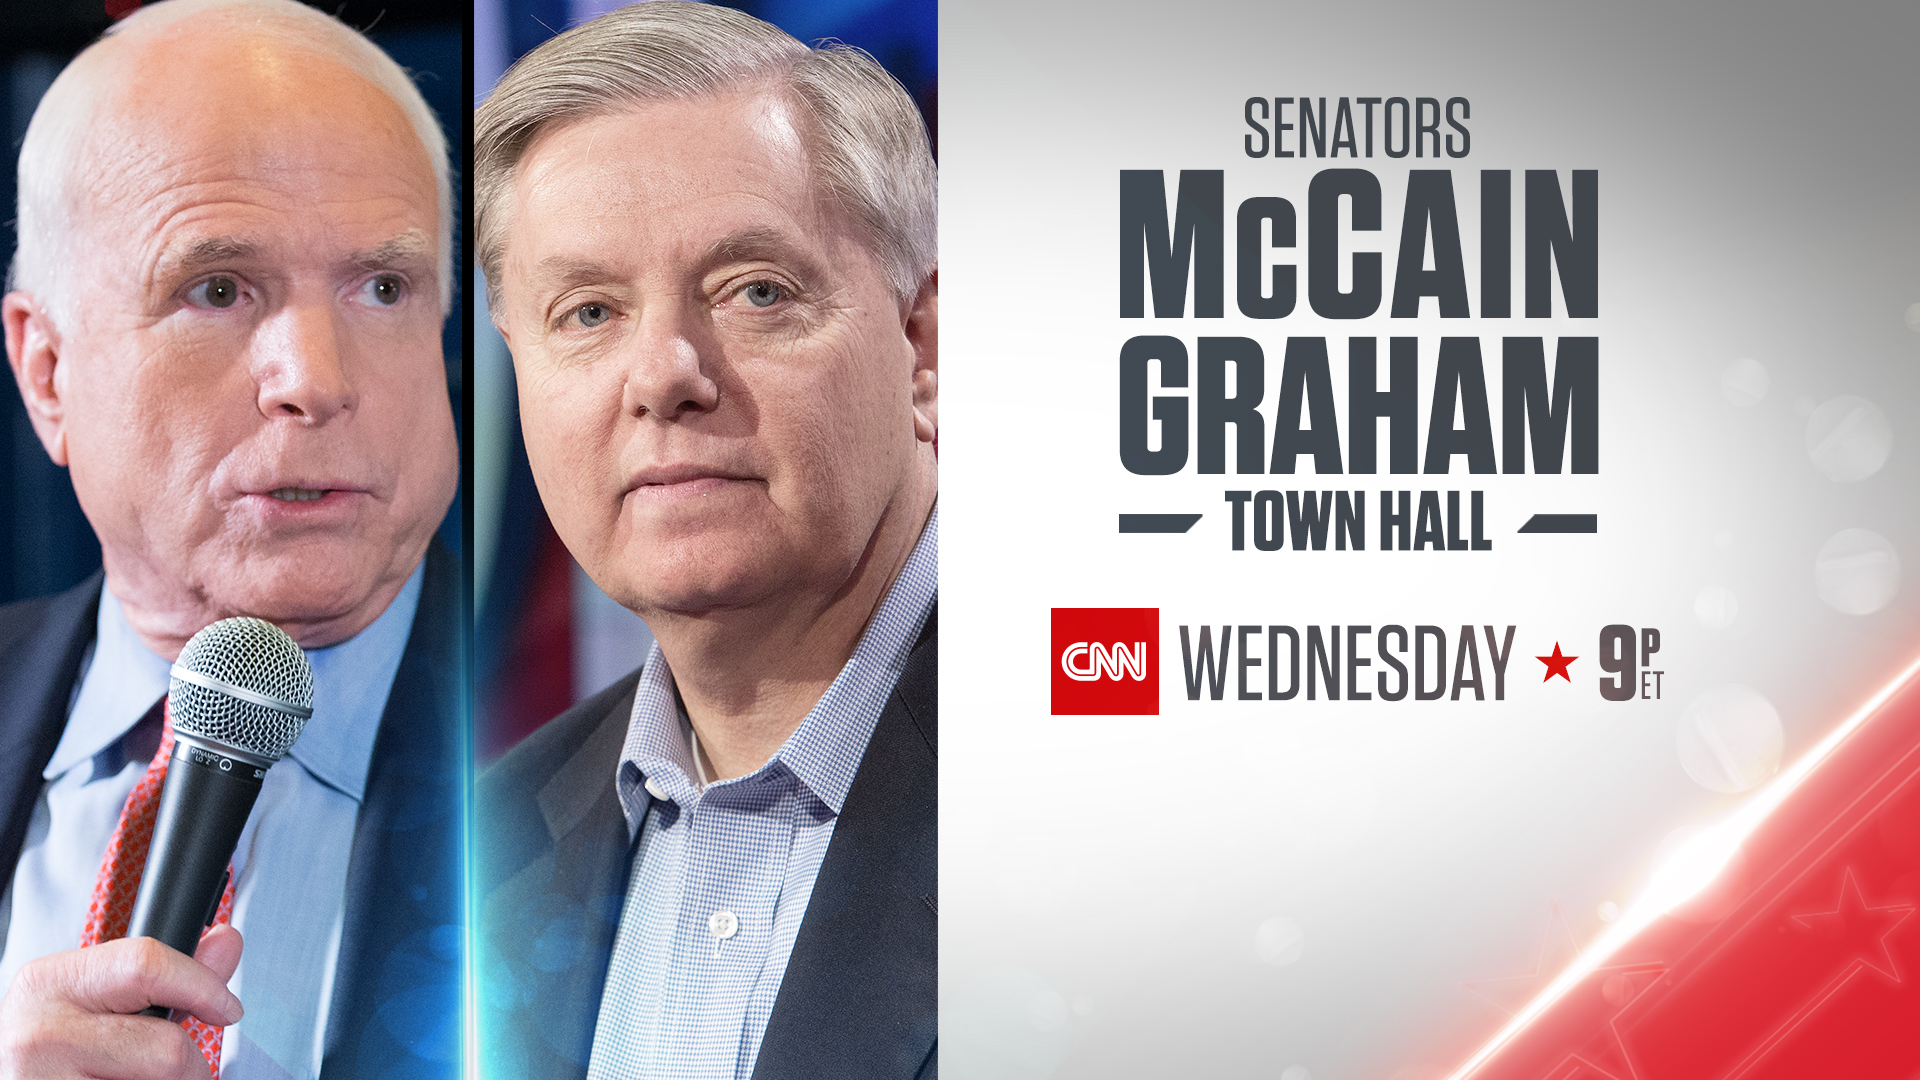 CNN to Host Town Hall with Sen. Graham and Sen. McCain on March 1